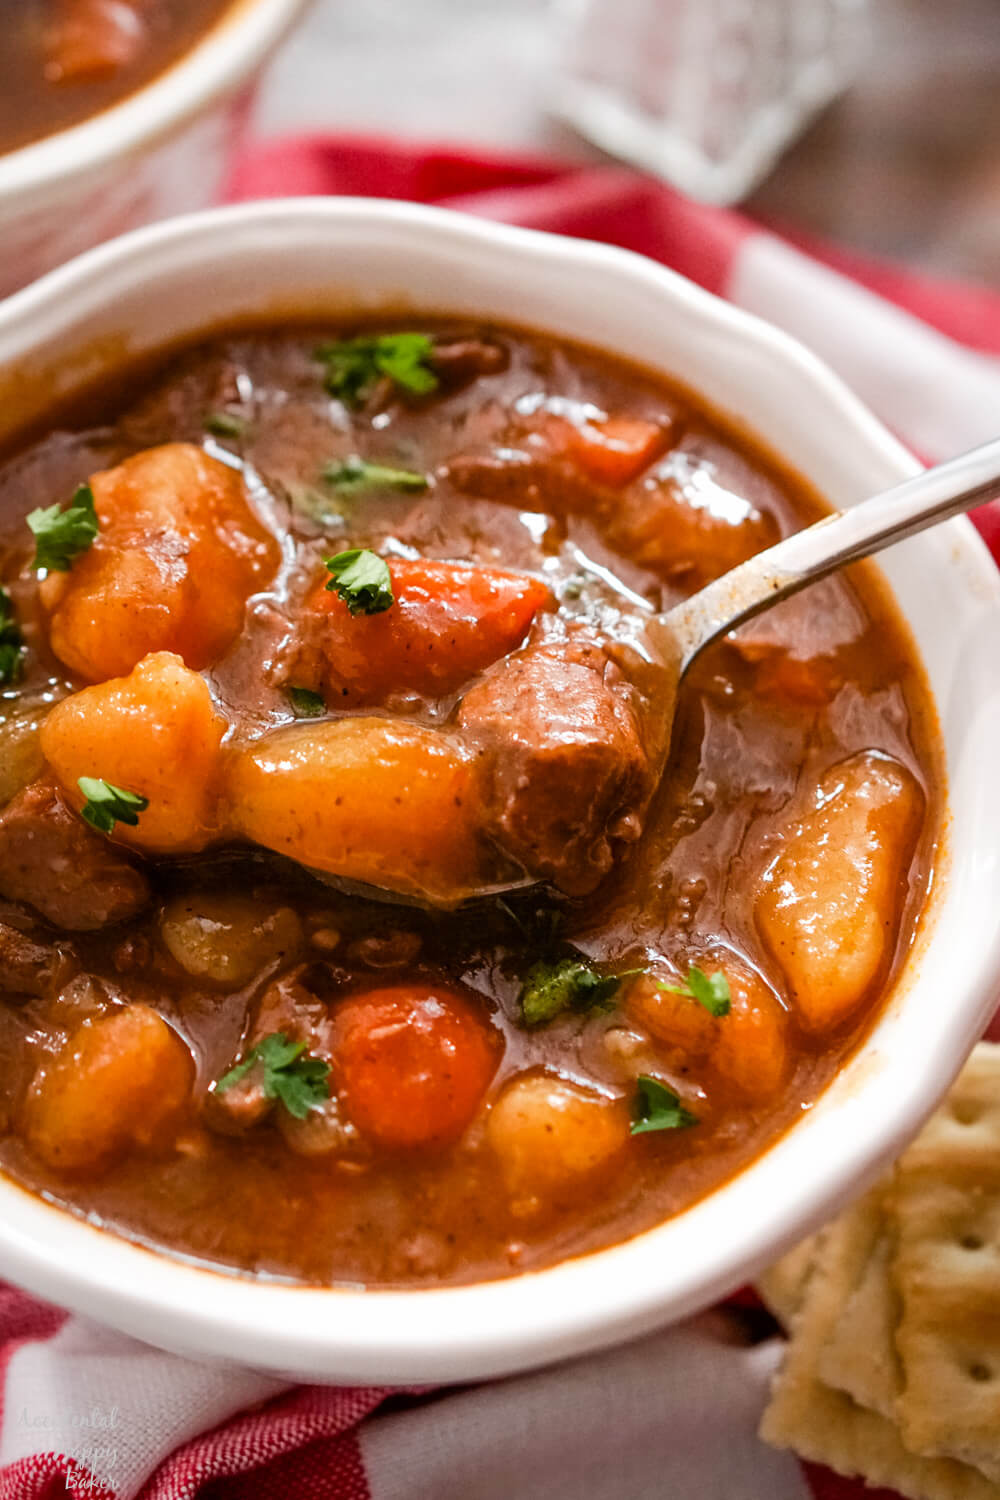 A close up image of a white soup bowl full of instant pot beef stew on a red checkered towel.